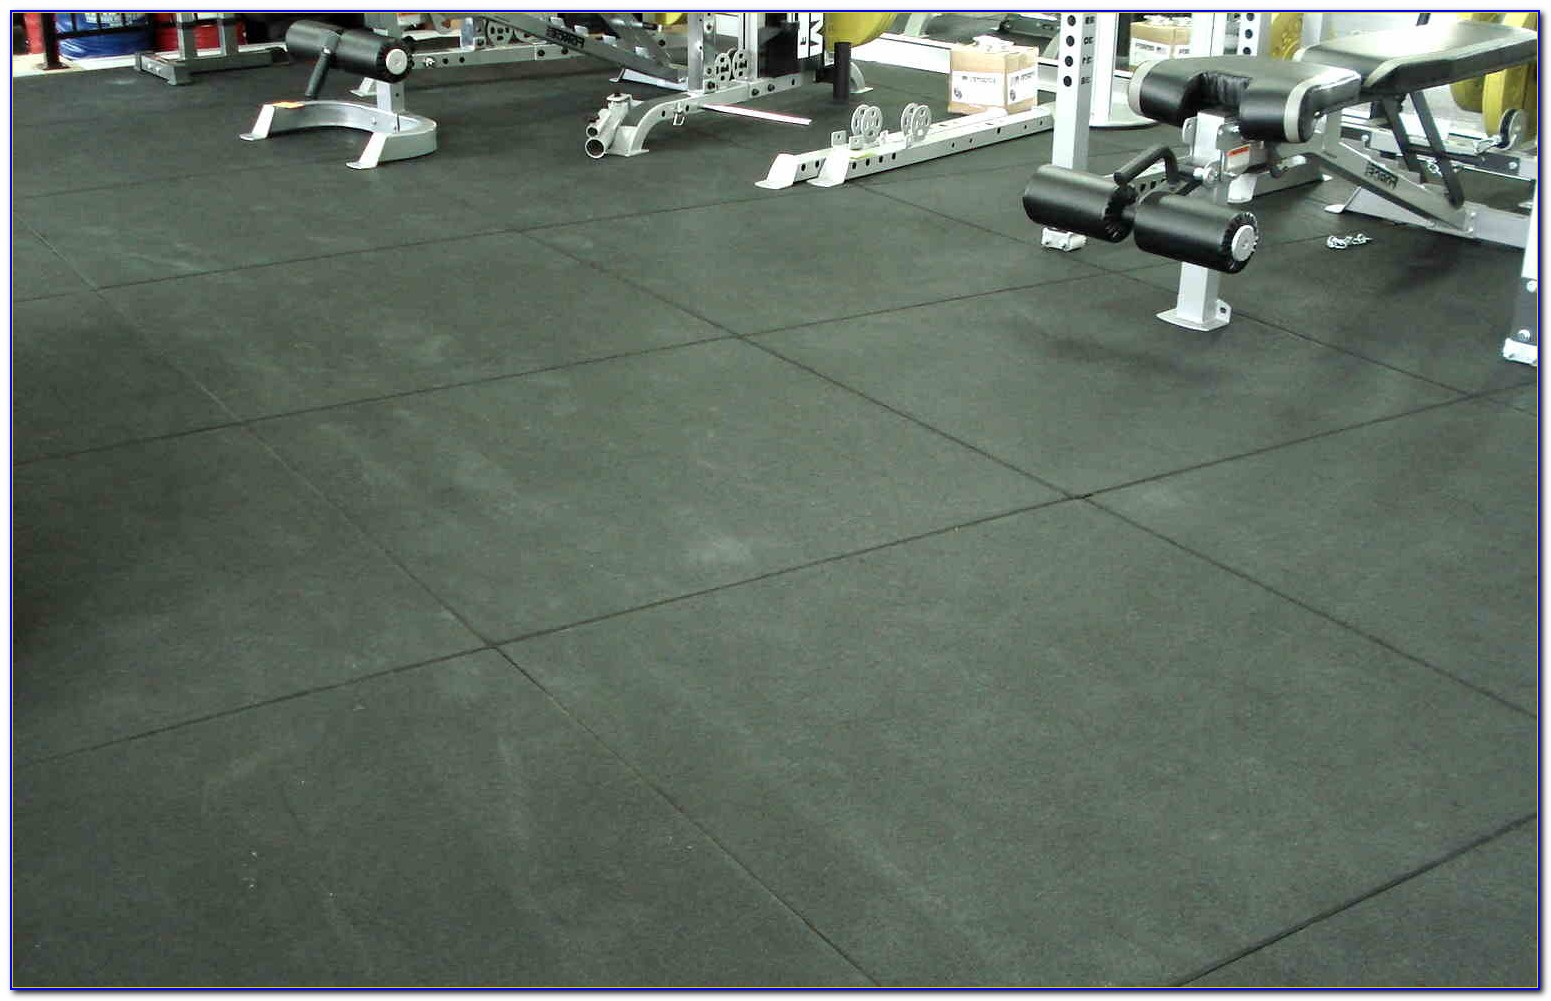 Best Rubber Floor Mats For Gym